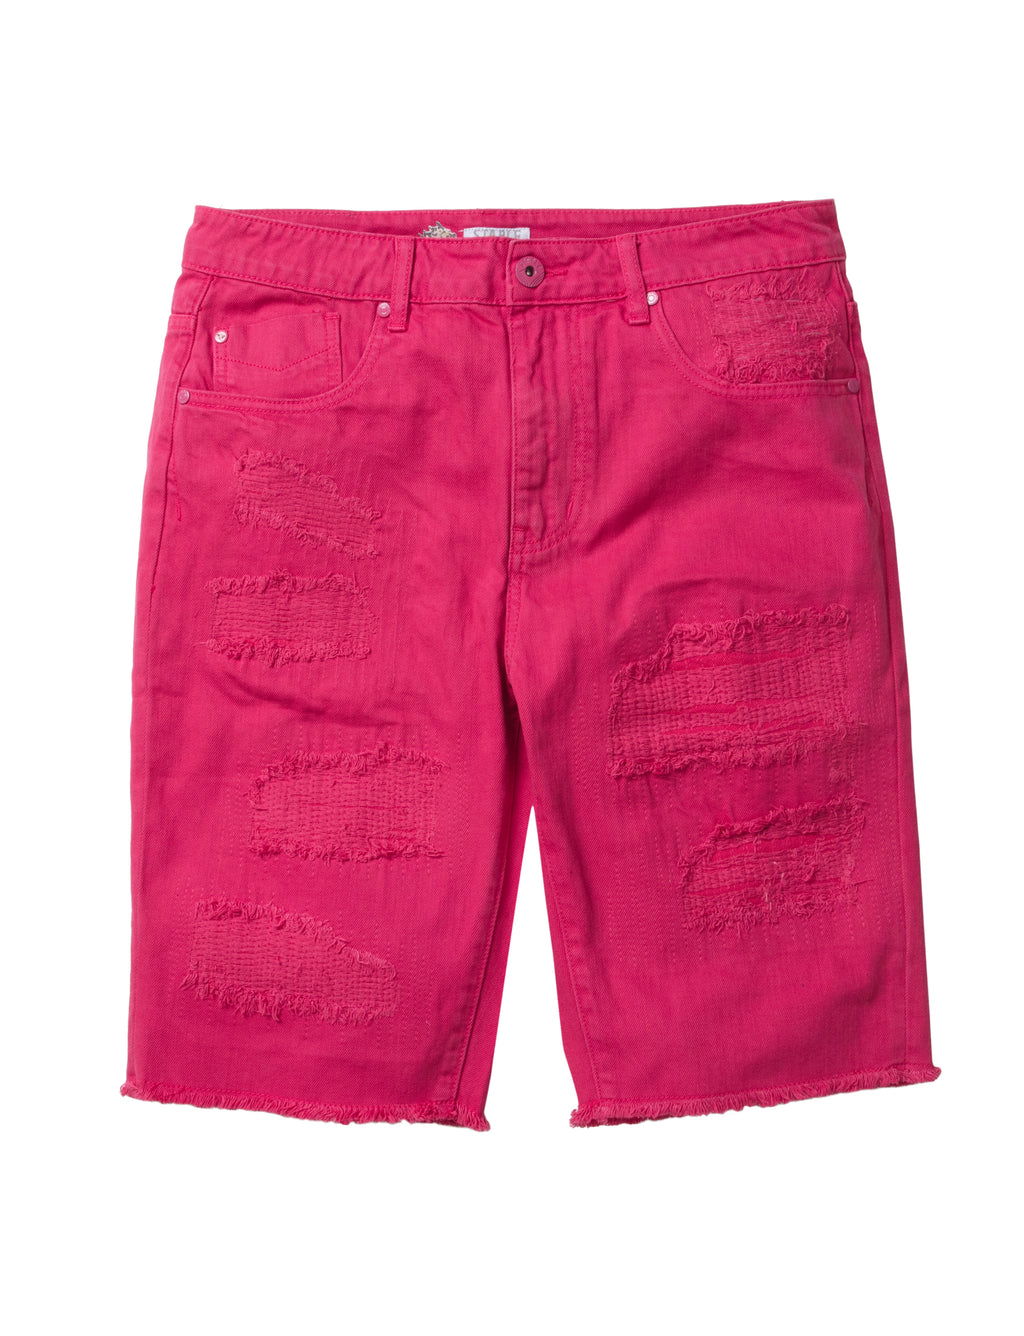 Ripped Denim Shorts - Shorts | Staple Pigeon